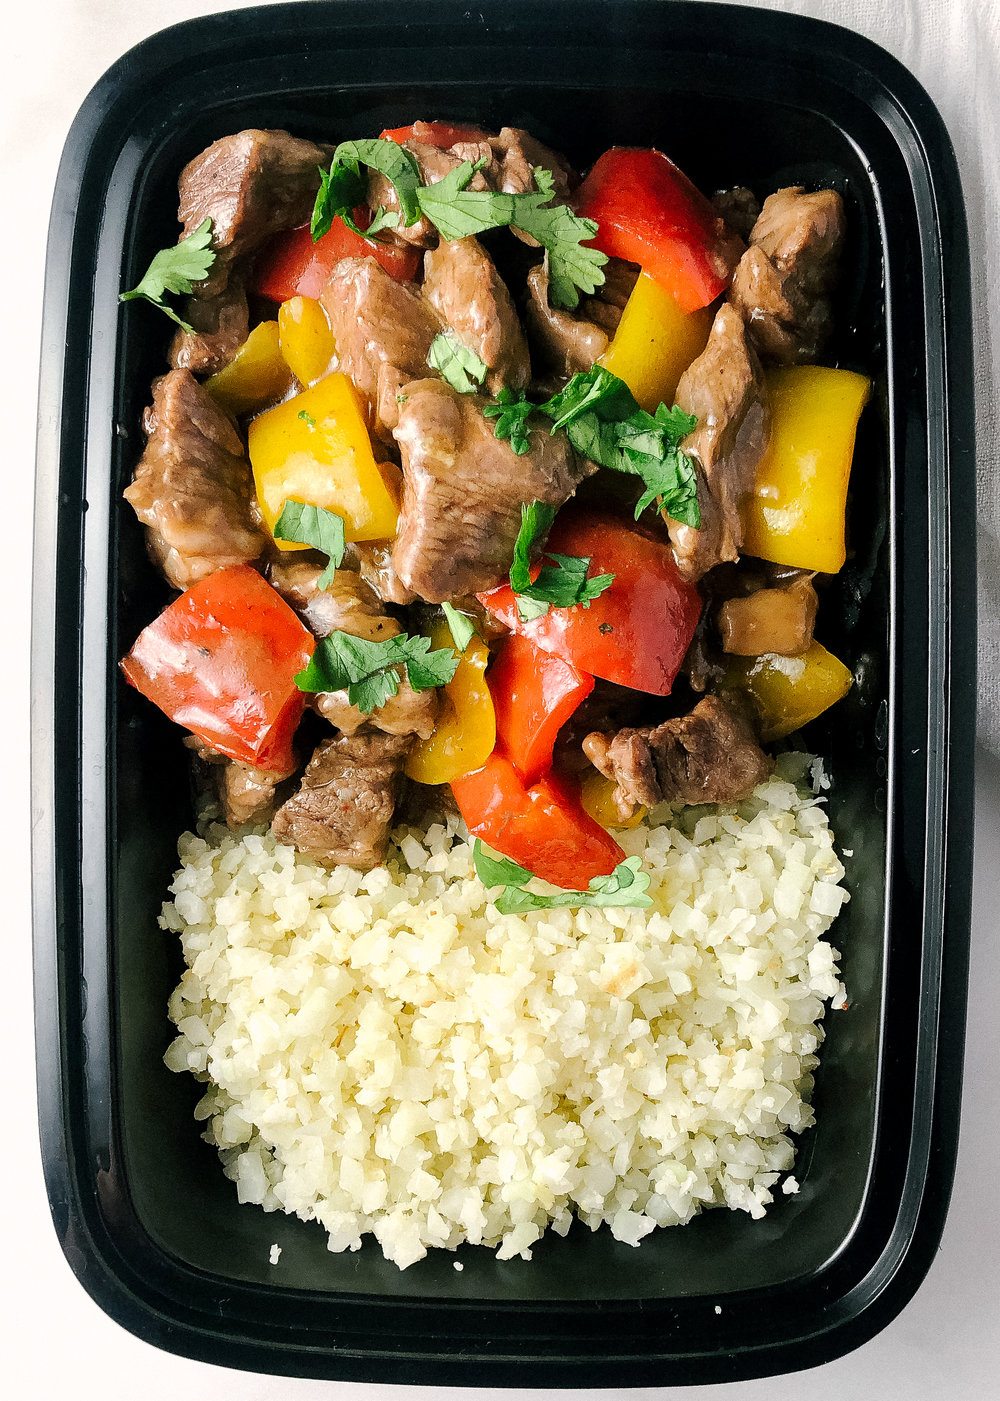 Sour cherry beef and bell peppers is a whole30 or paleo one pan meal that comes together in less than 30 minutes and will satisfy the whole family.